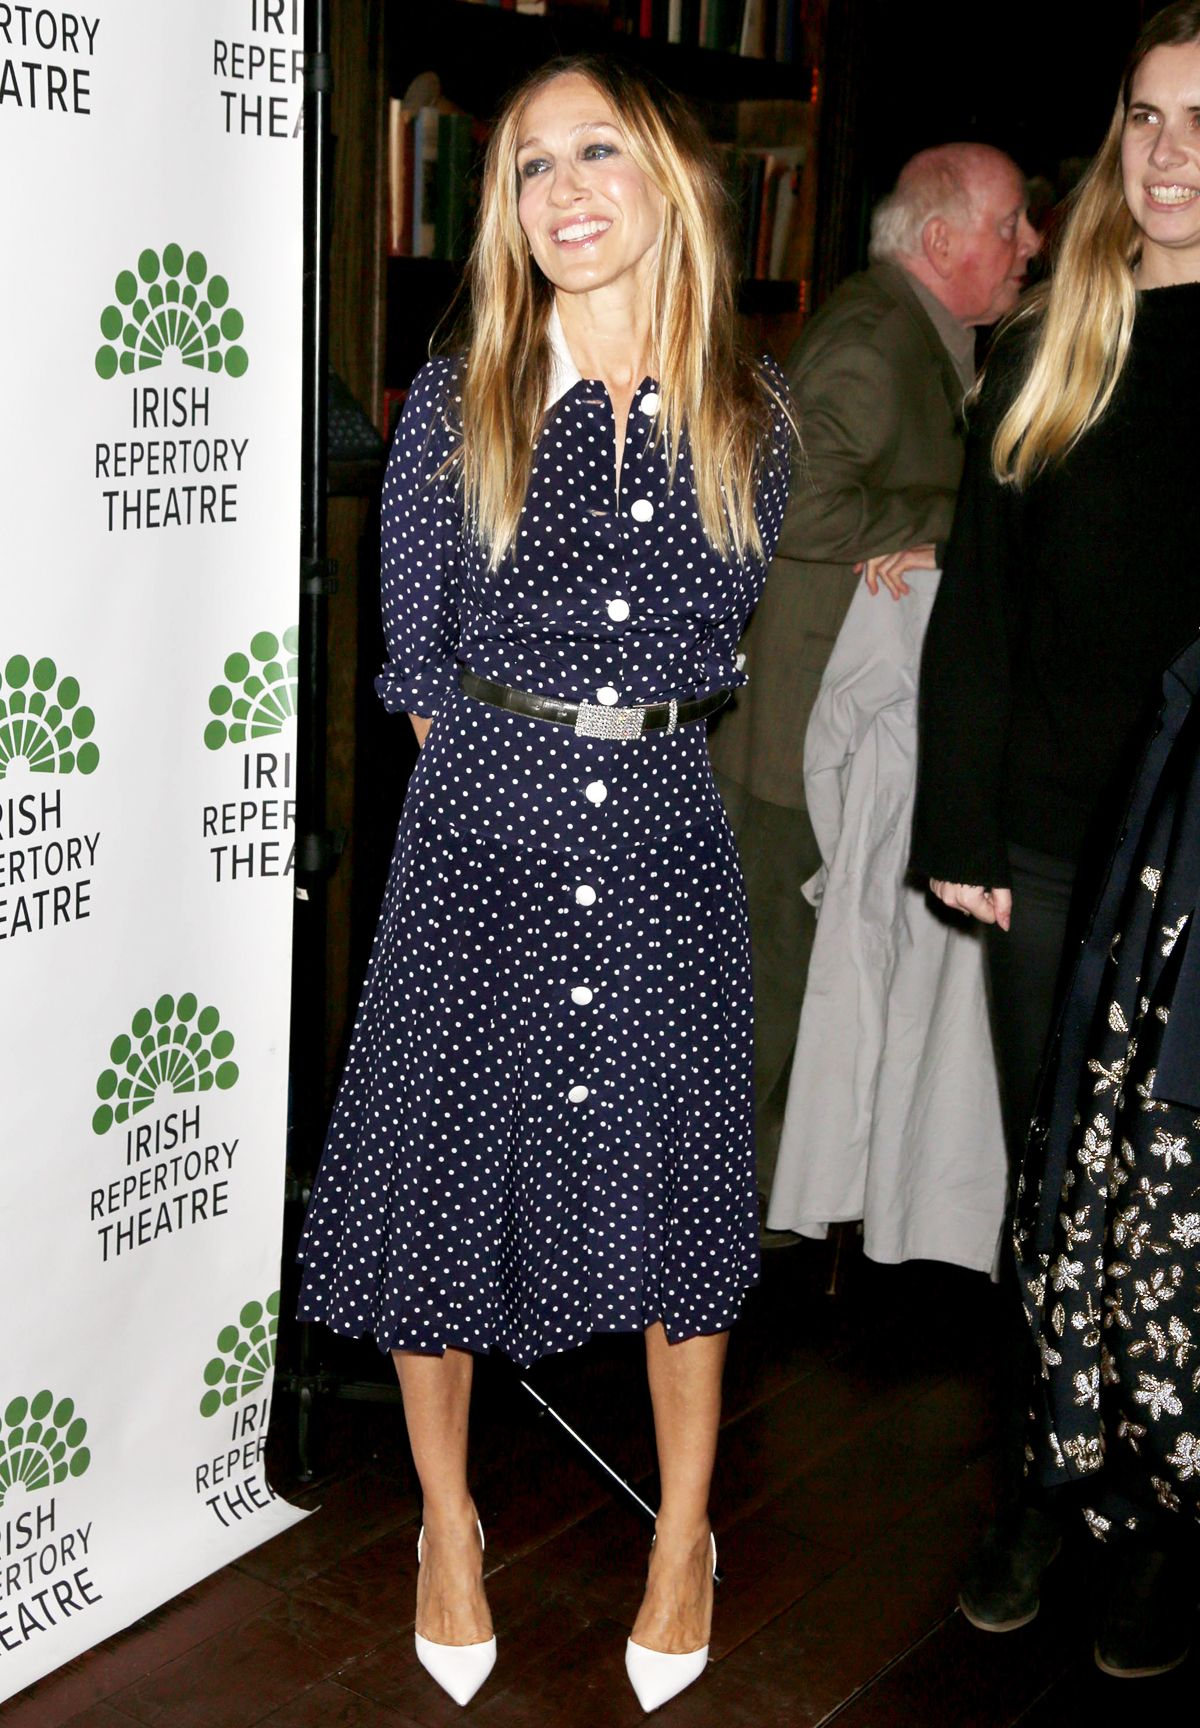 K-Mids Just Wore the Polka-Dot Dress Every Fashion Editor Wanted to Buy